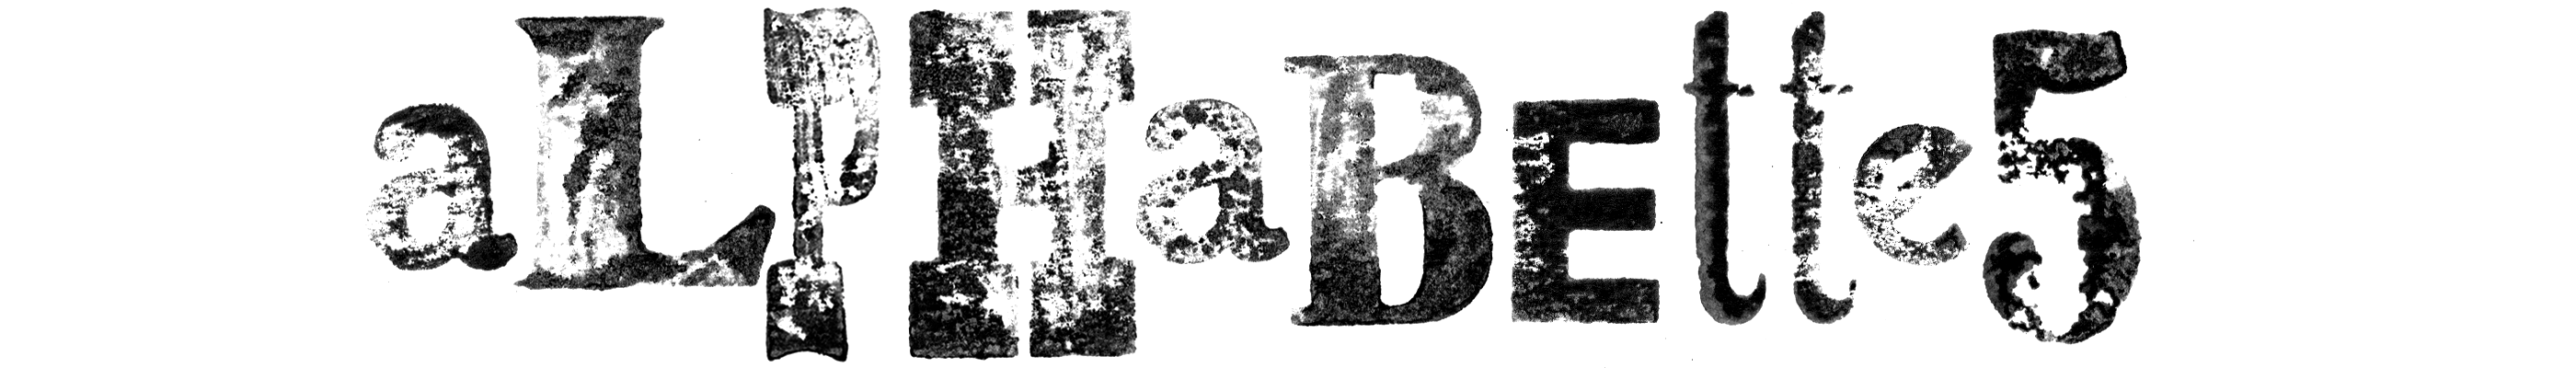 Alphabettes header set in wood type